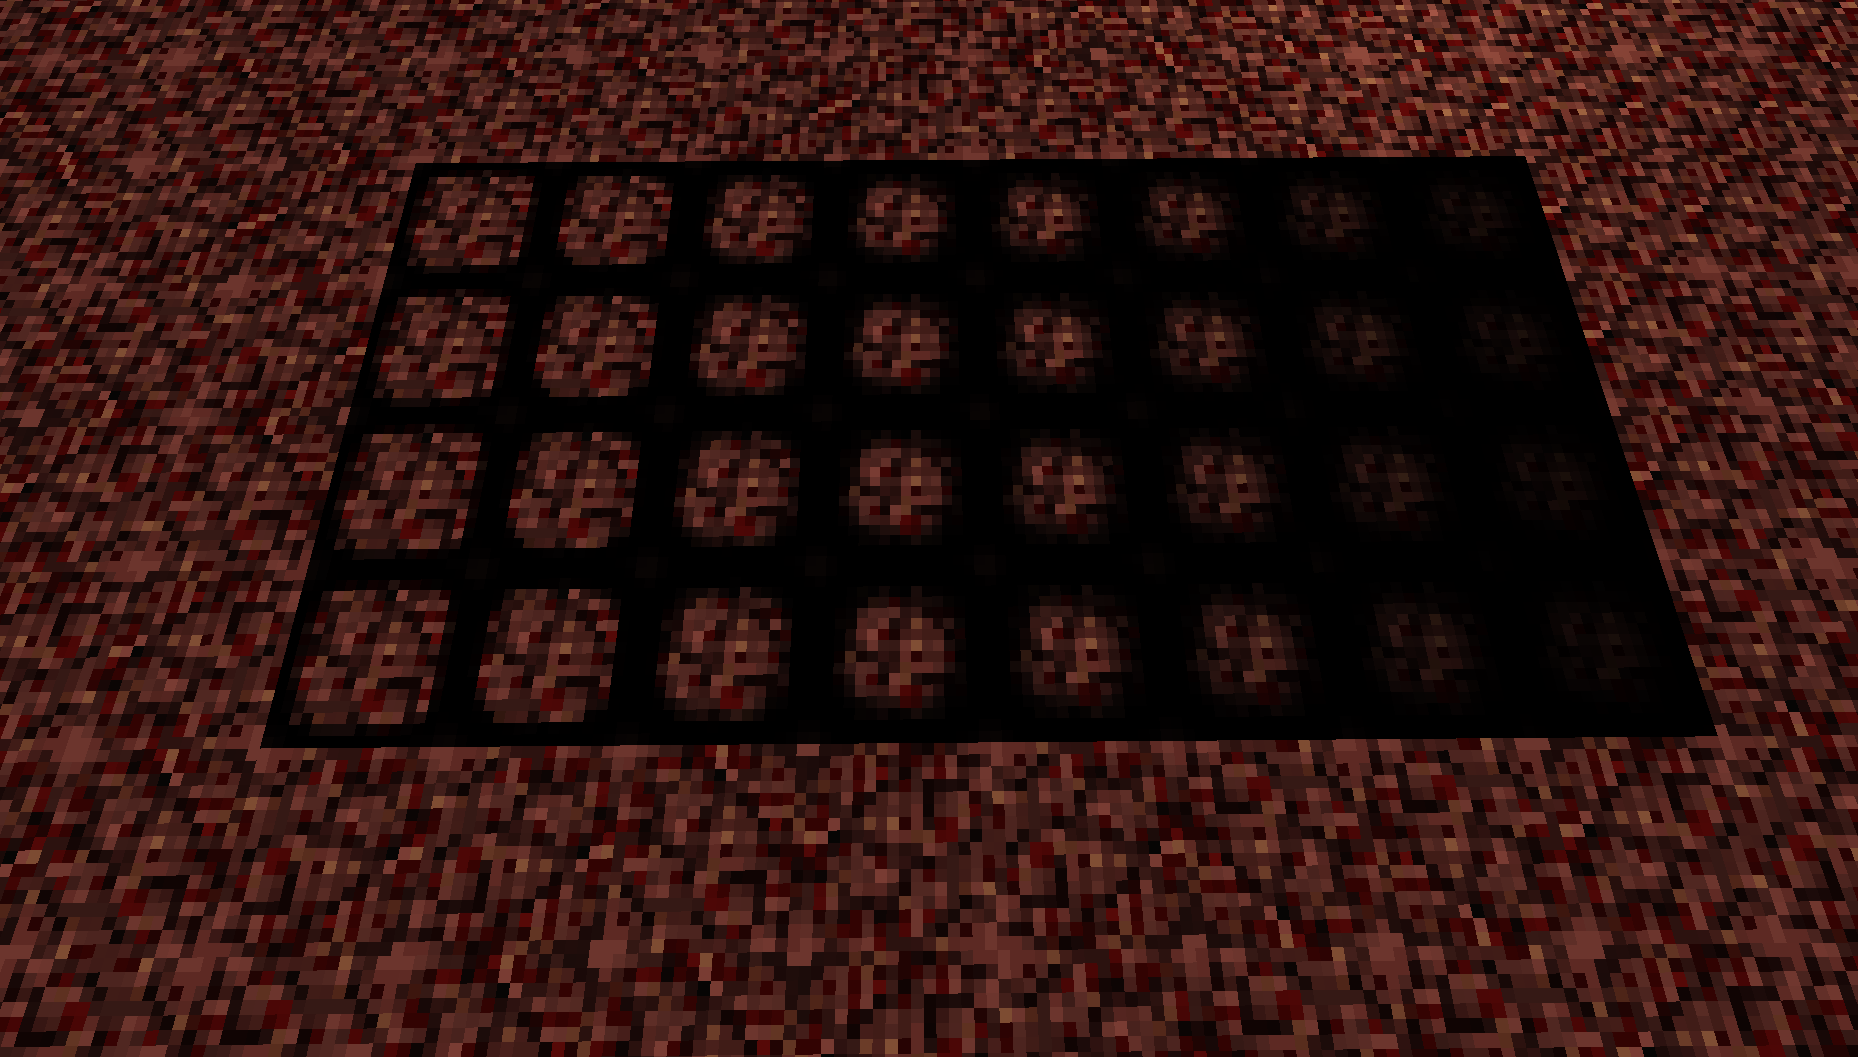 What Can I Craft With Nether Star